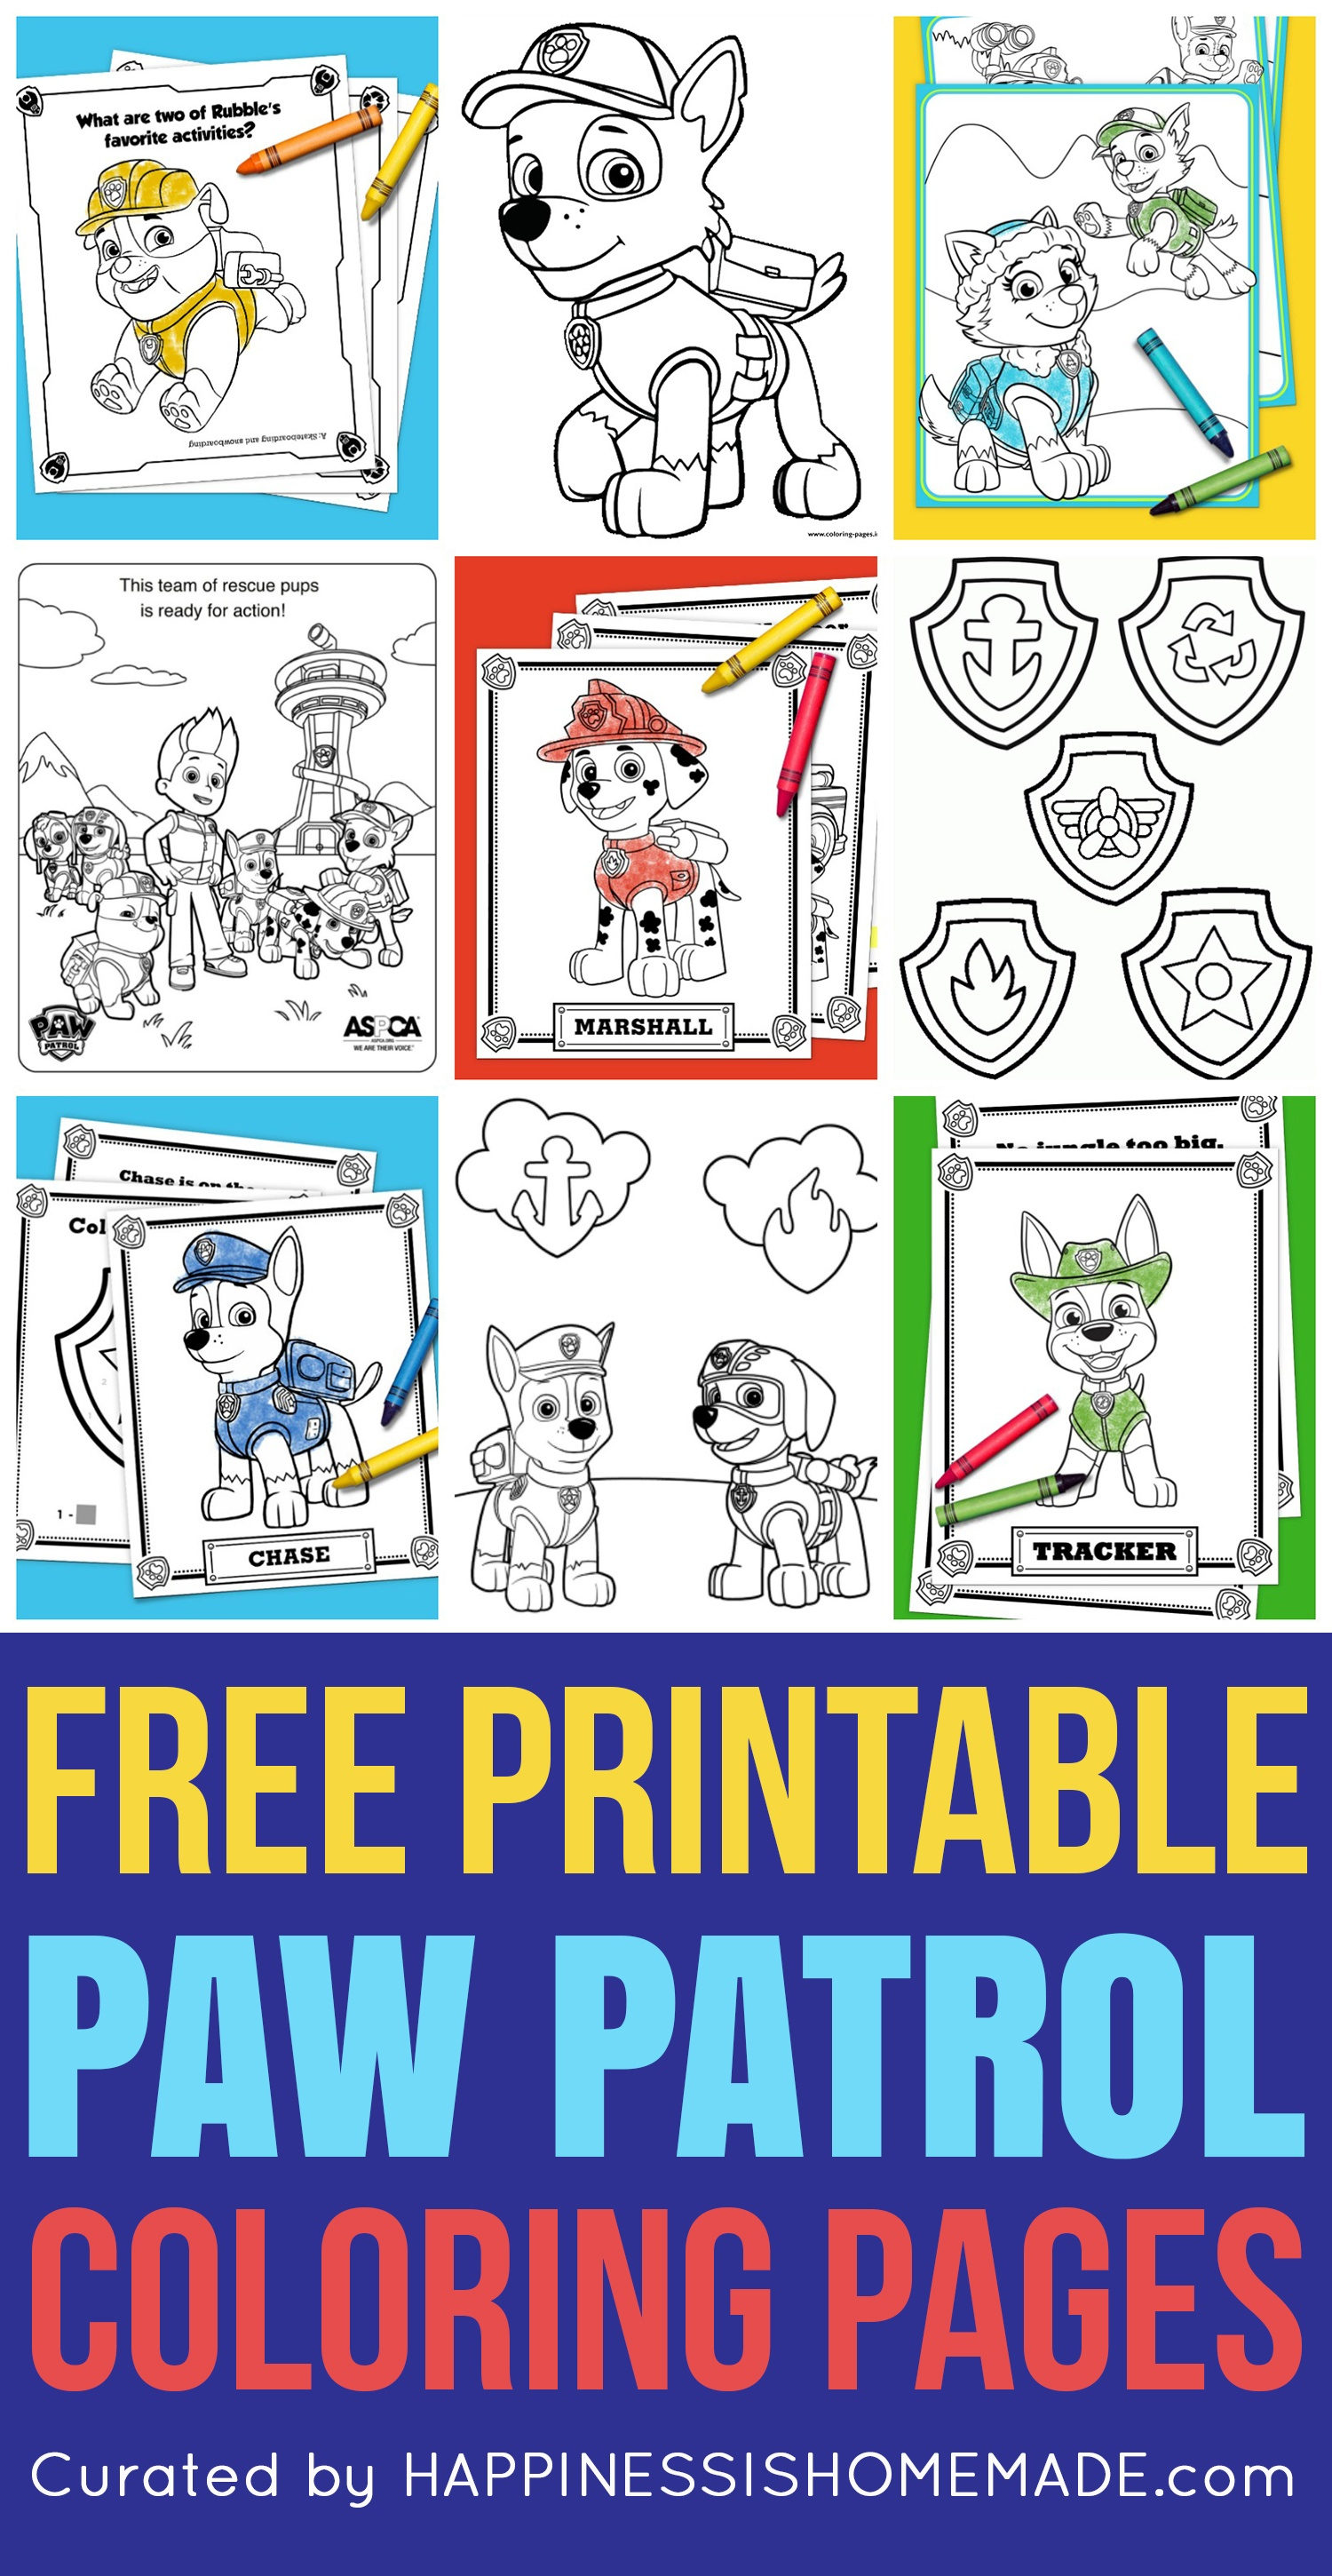 Free Paw Patrol Coloring Pages - Happiness Is Homemade - Paw Patrol Free Printables